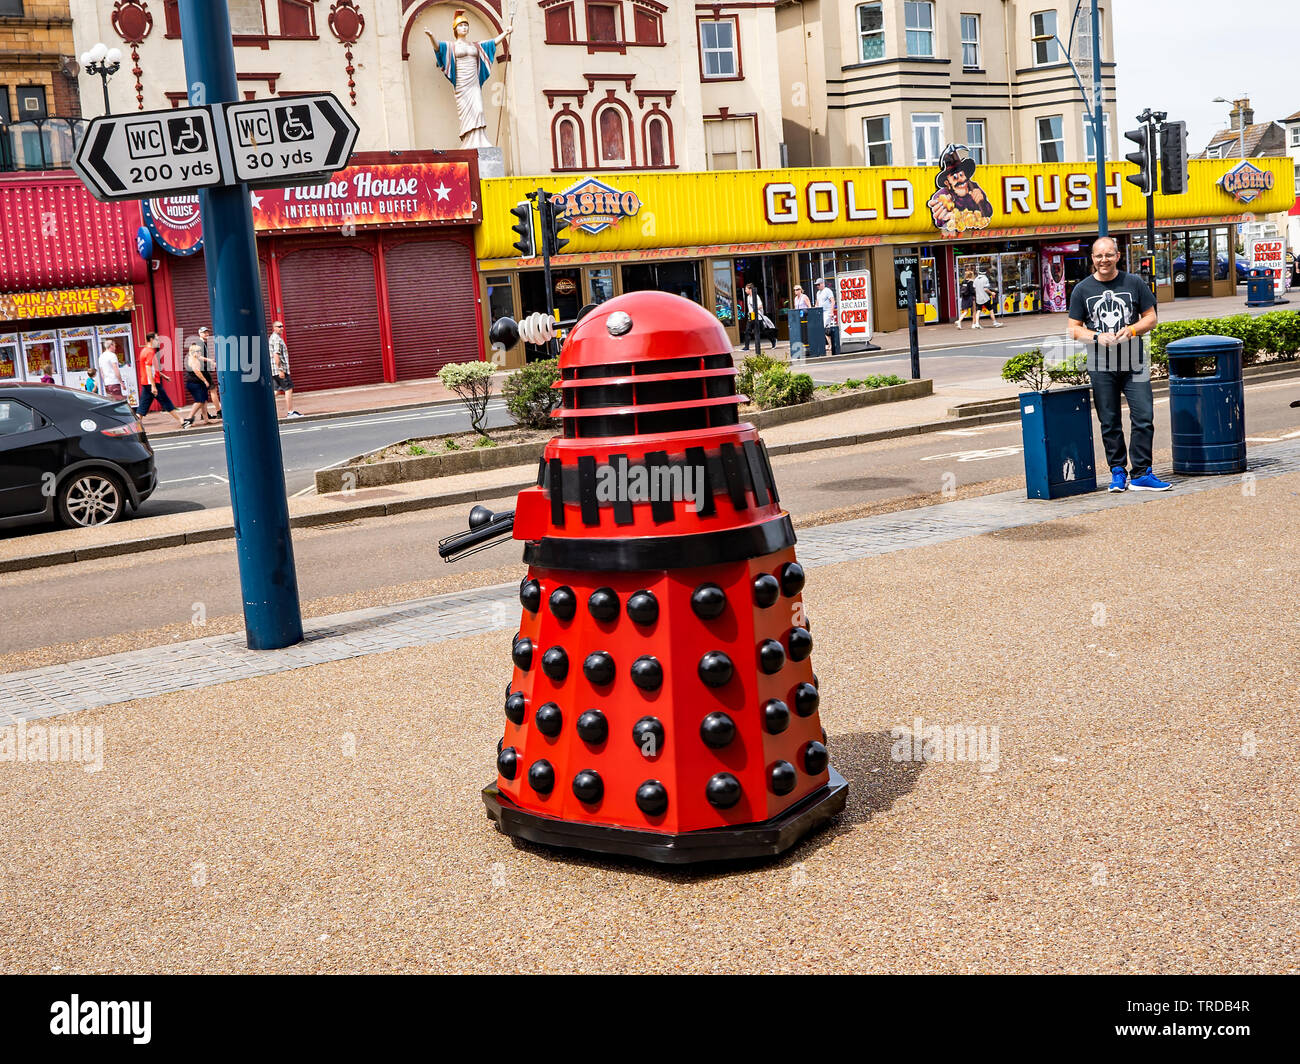 Great Yarmouth Comicon 2019 – A red Dalek used in the Dr Who TV series outside on the streets of Great Yarmouth during a Comicon event held down the s - Stock Image